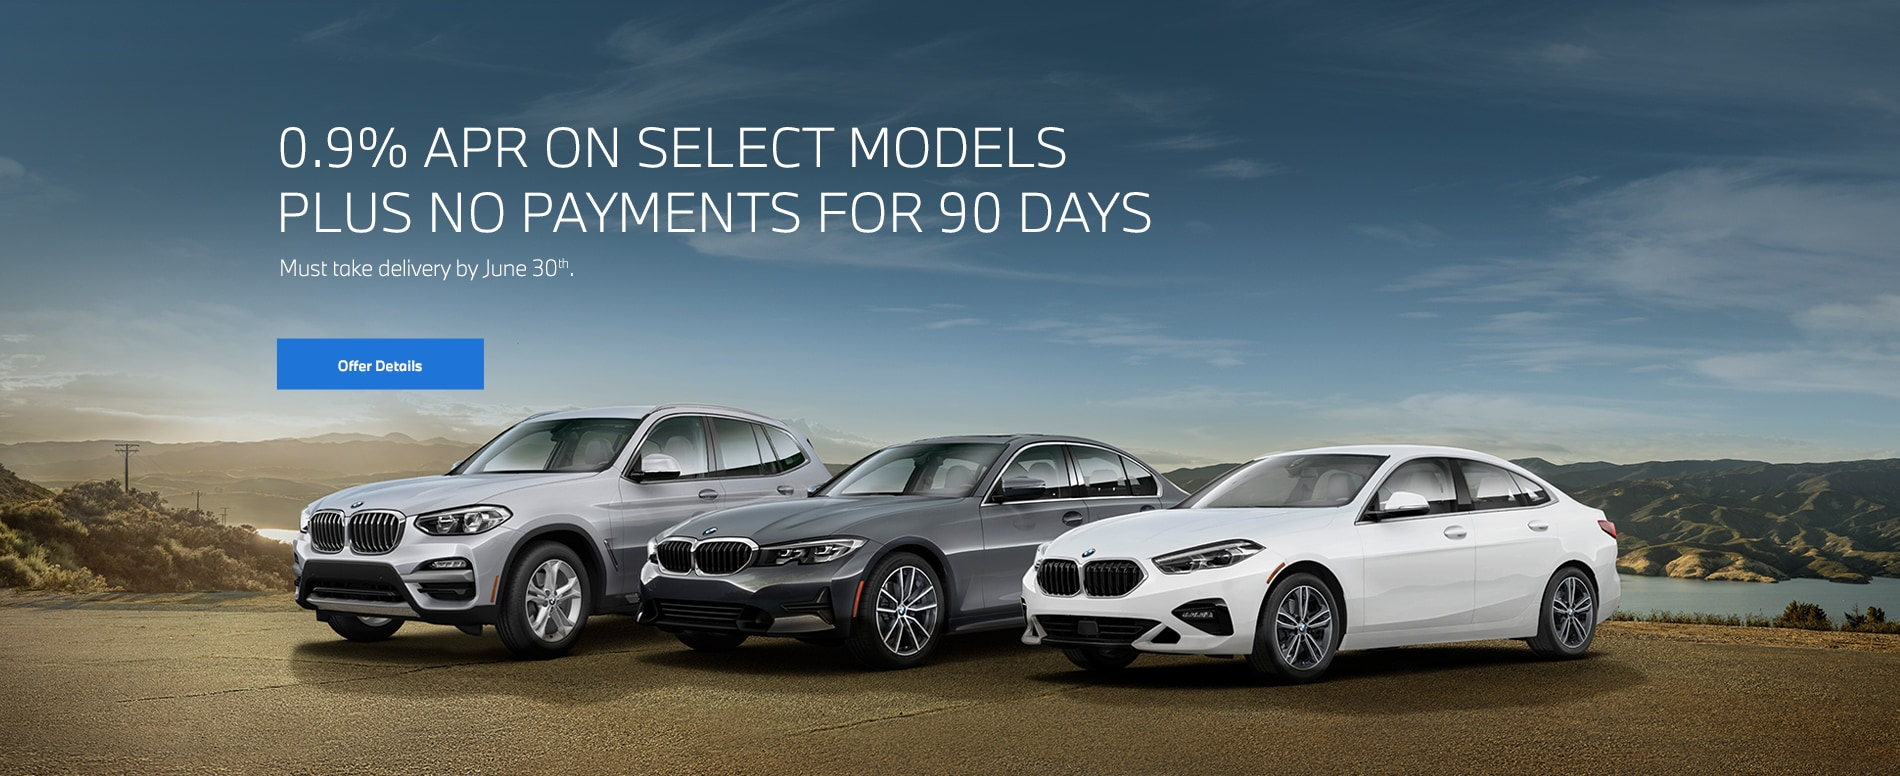 Bmw Of Des Moines New Bmw Amp Used Car Dealership In